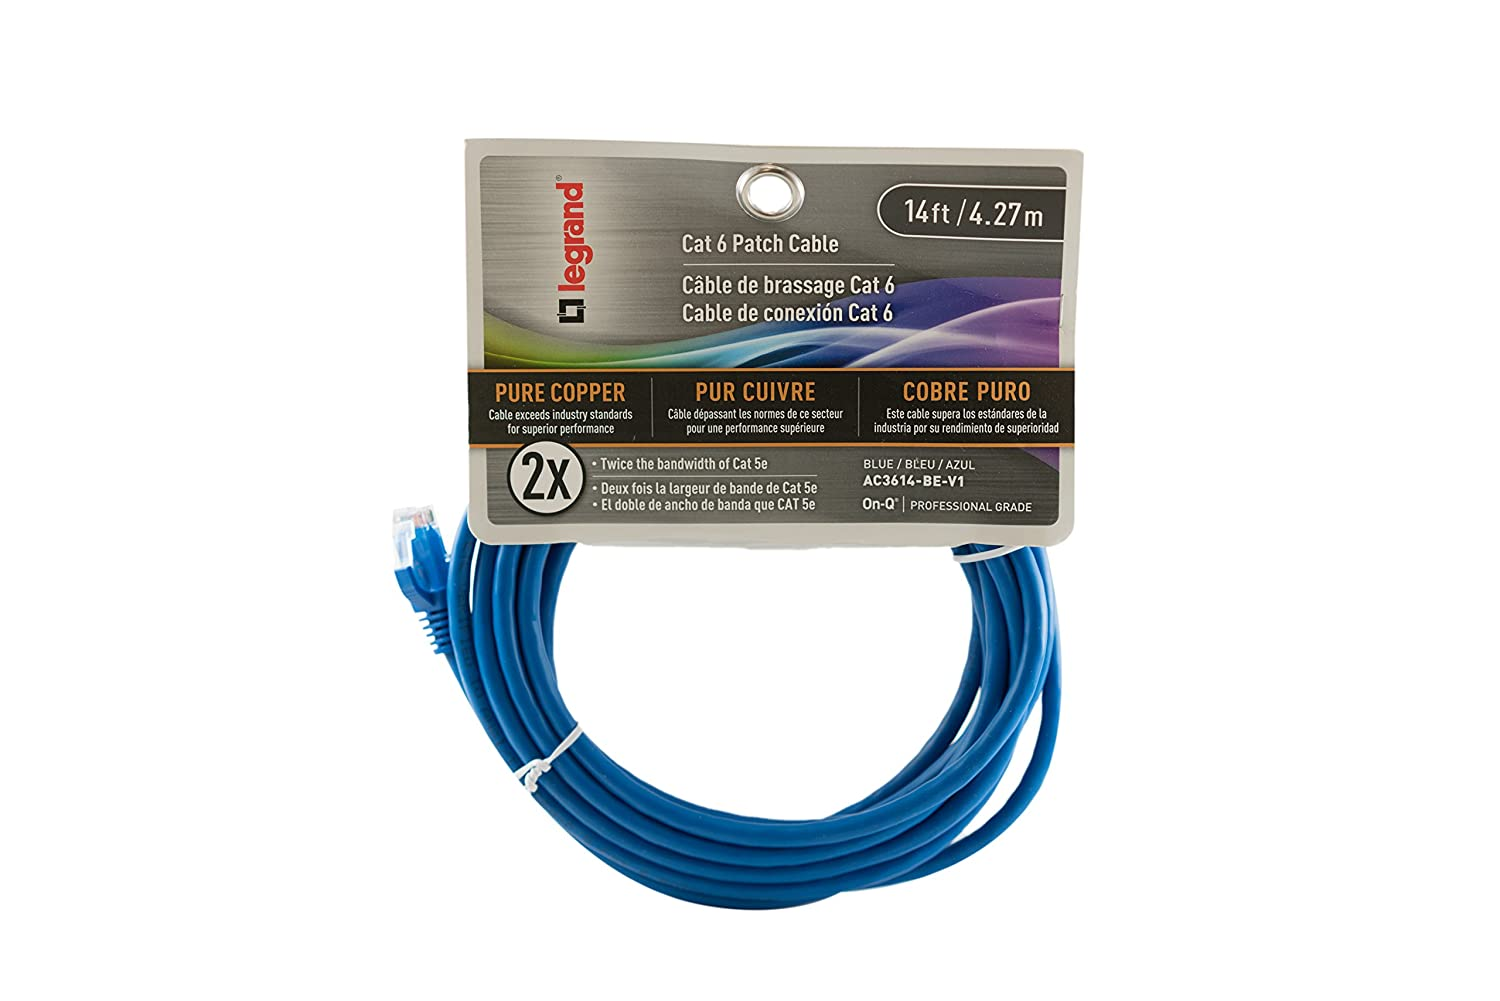 Legrand On Q Ac36014bev1 Cat 6 Patch Cable 10gbps Ethernet Speed Wiring Standards Computer Networking Cord Data 14 Feet Blue Electrical Cables